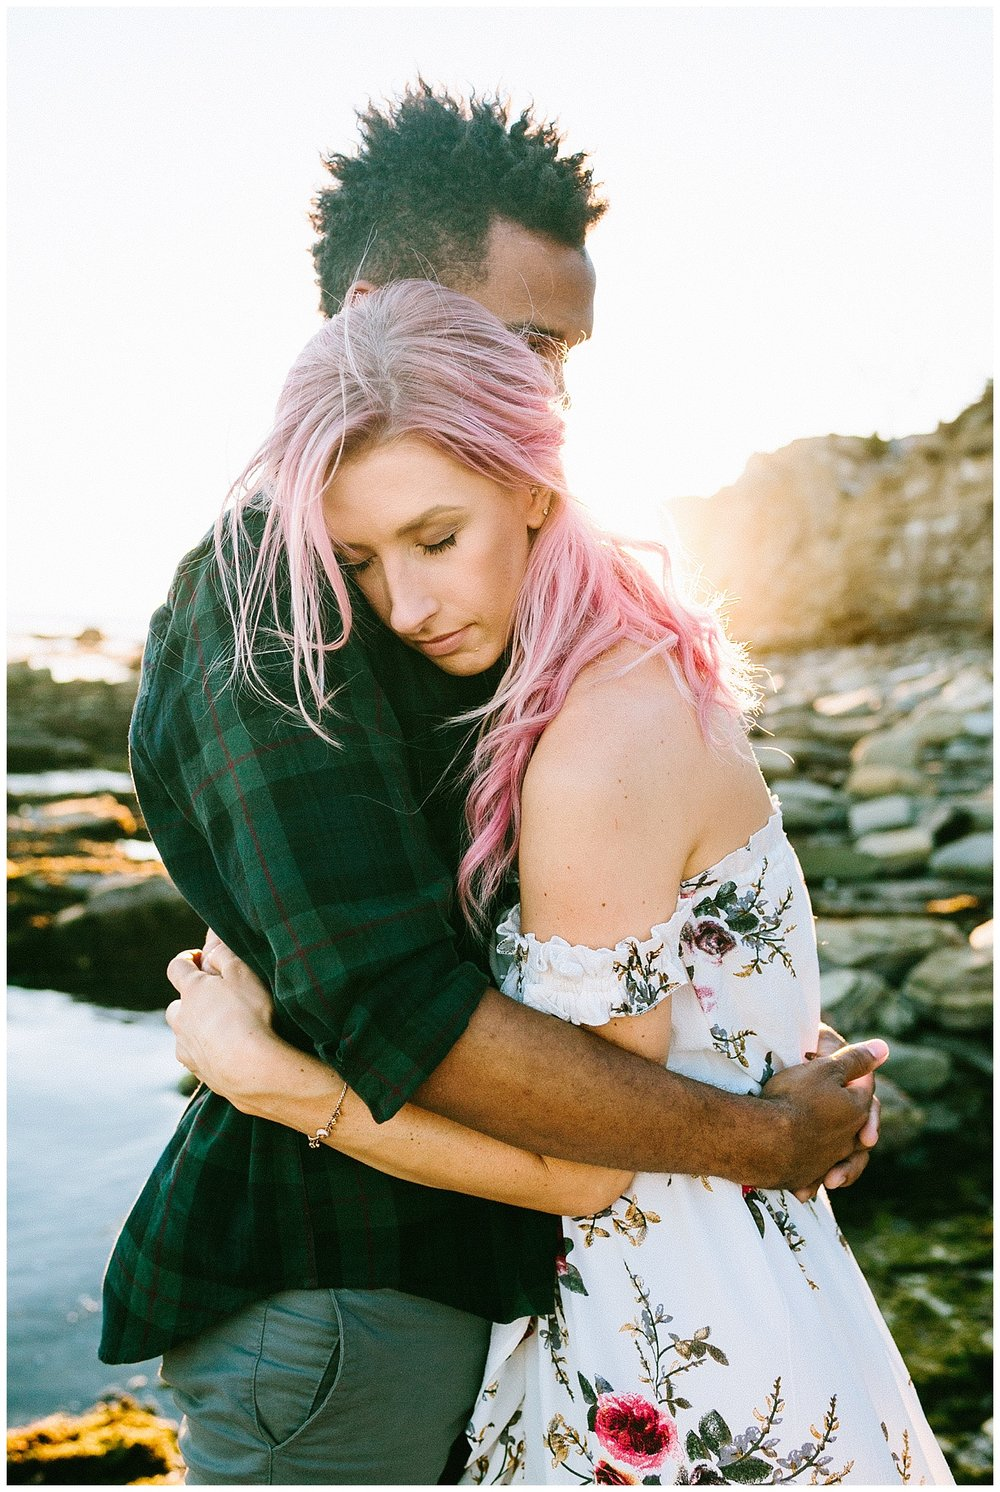 beach+southern+california+engagements+love+lifestyle+utah+colorado+california+washington+oregon+montana+wedding+photographer+photography+dayna+grace_0197.jpg